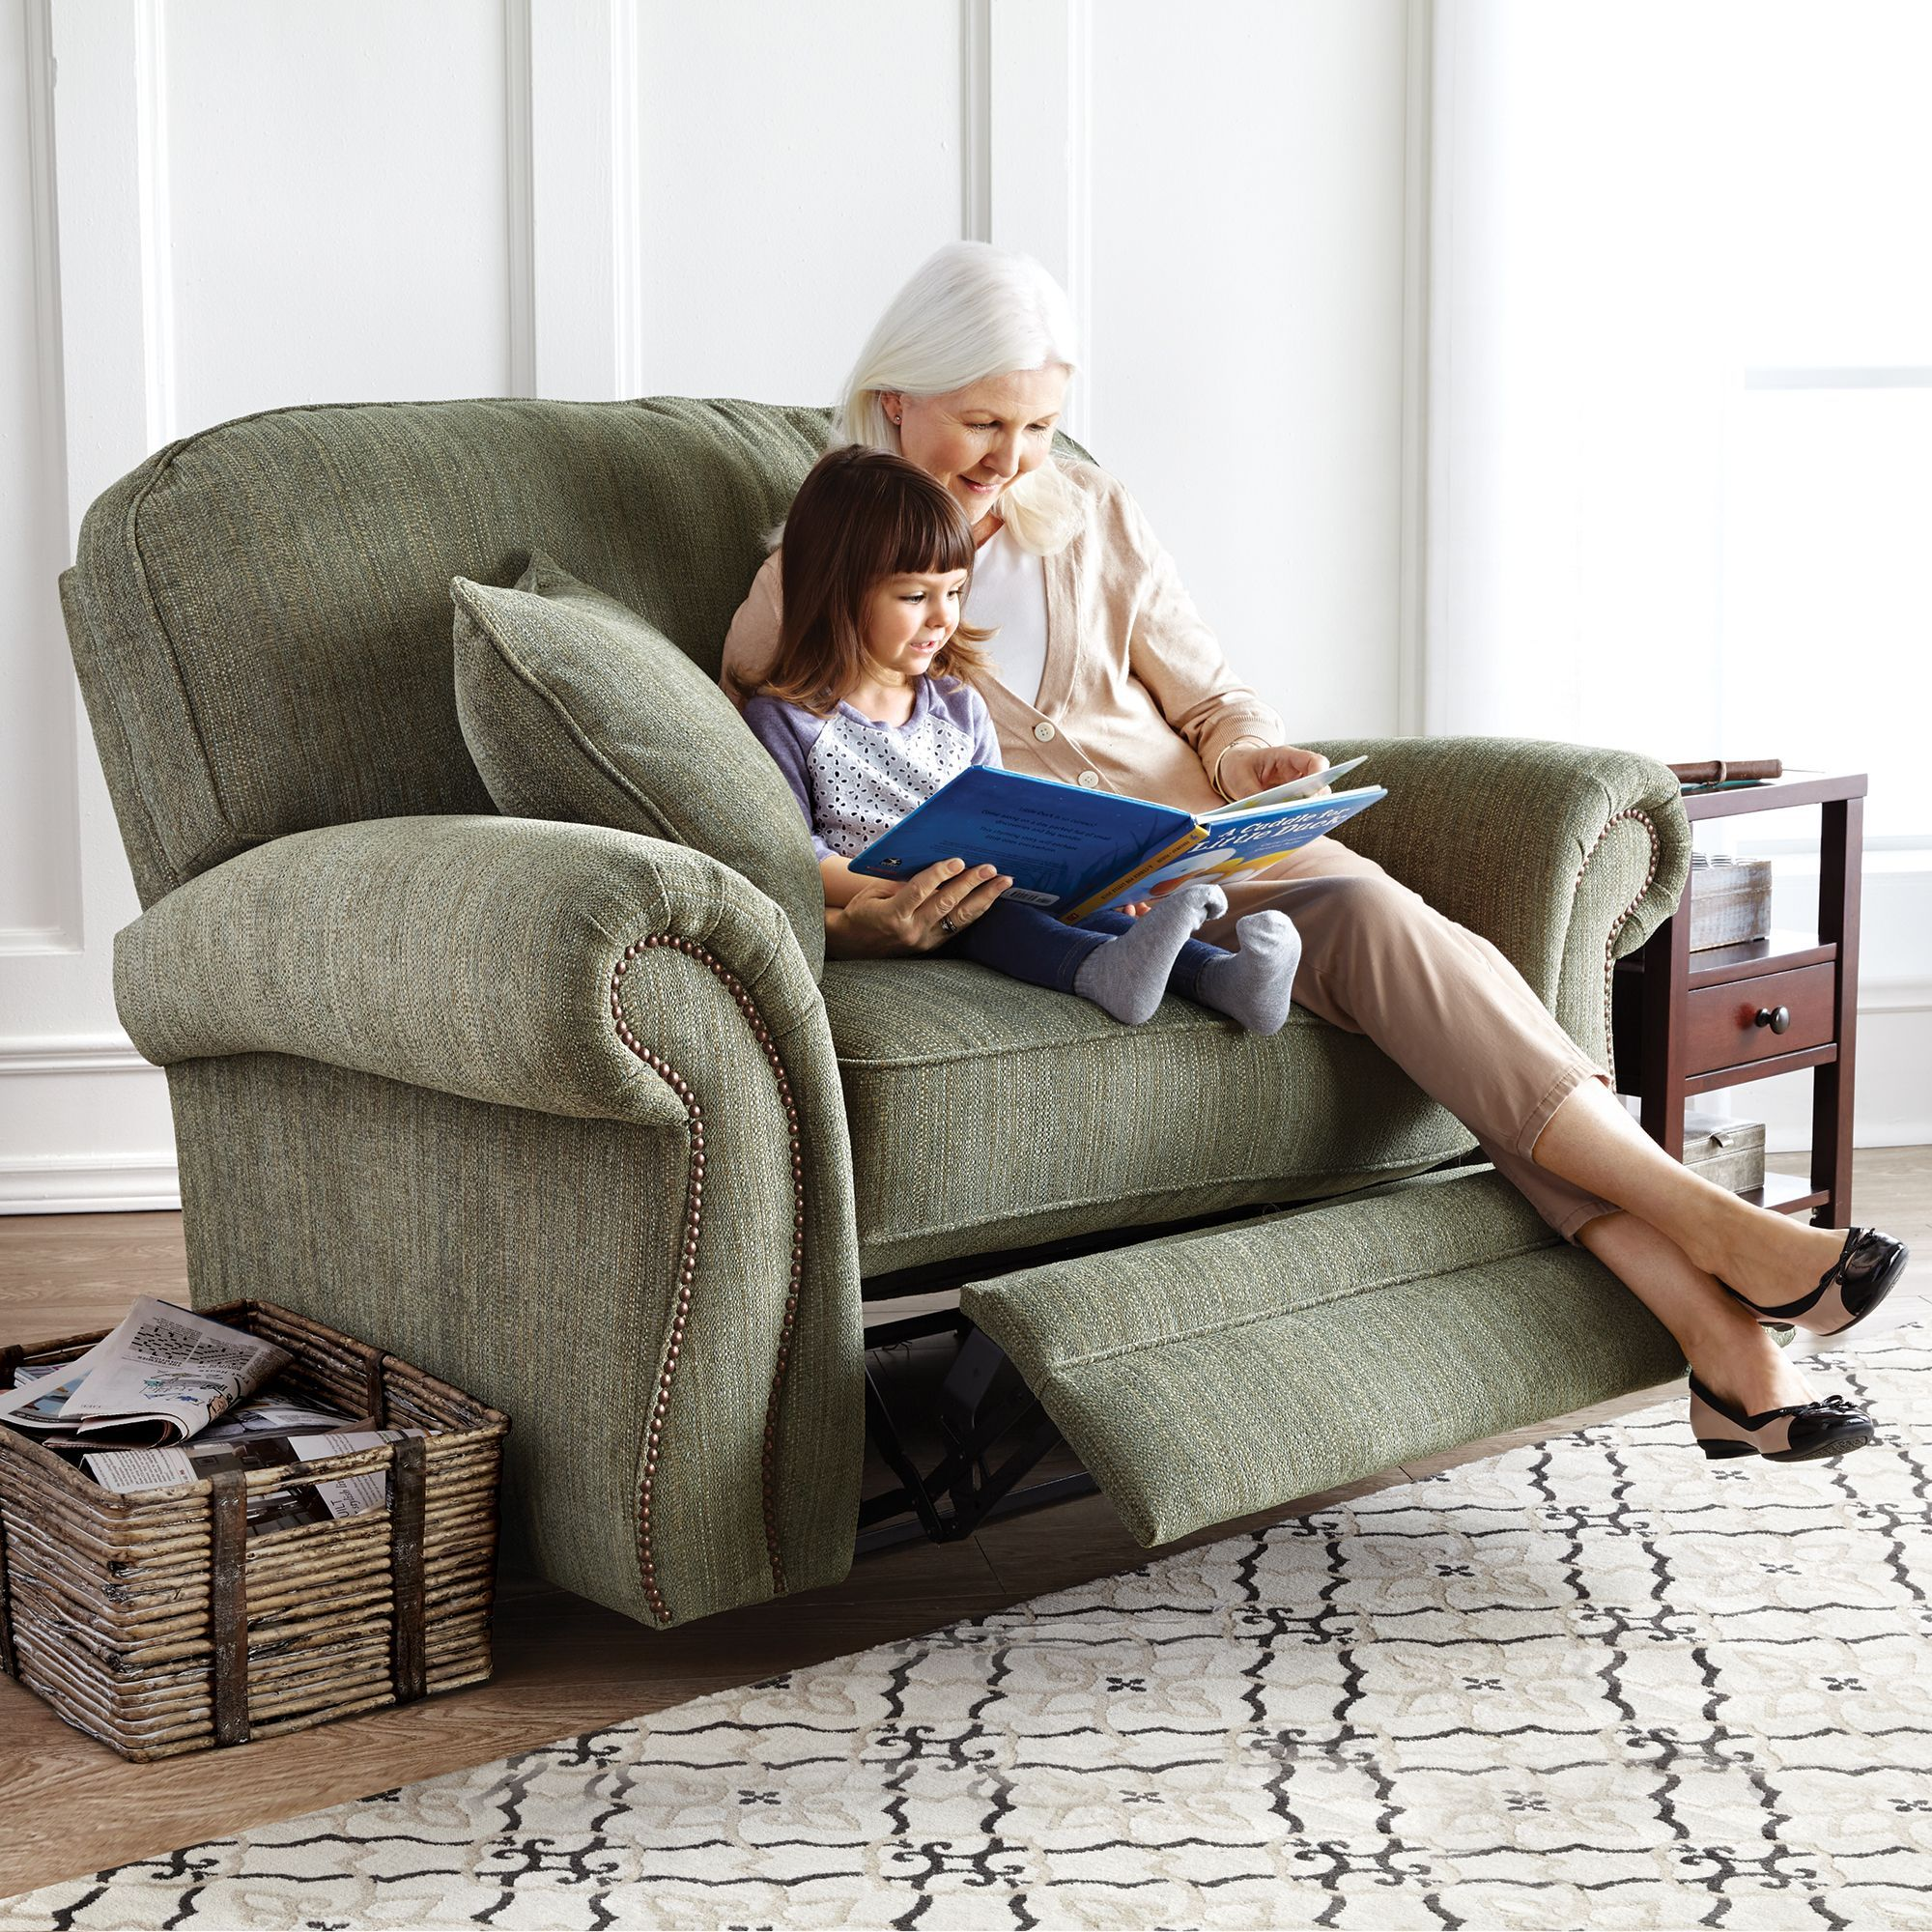 Broyhill Bradbury Snuggler Recliner Chair This is a beautiful